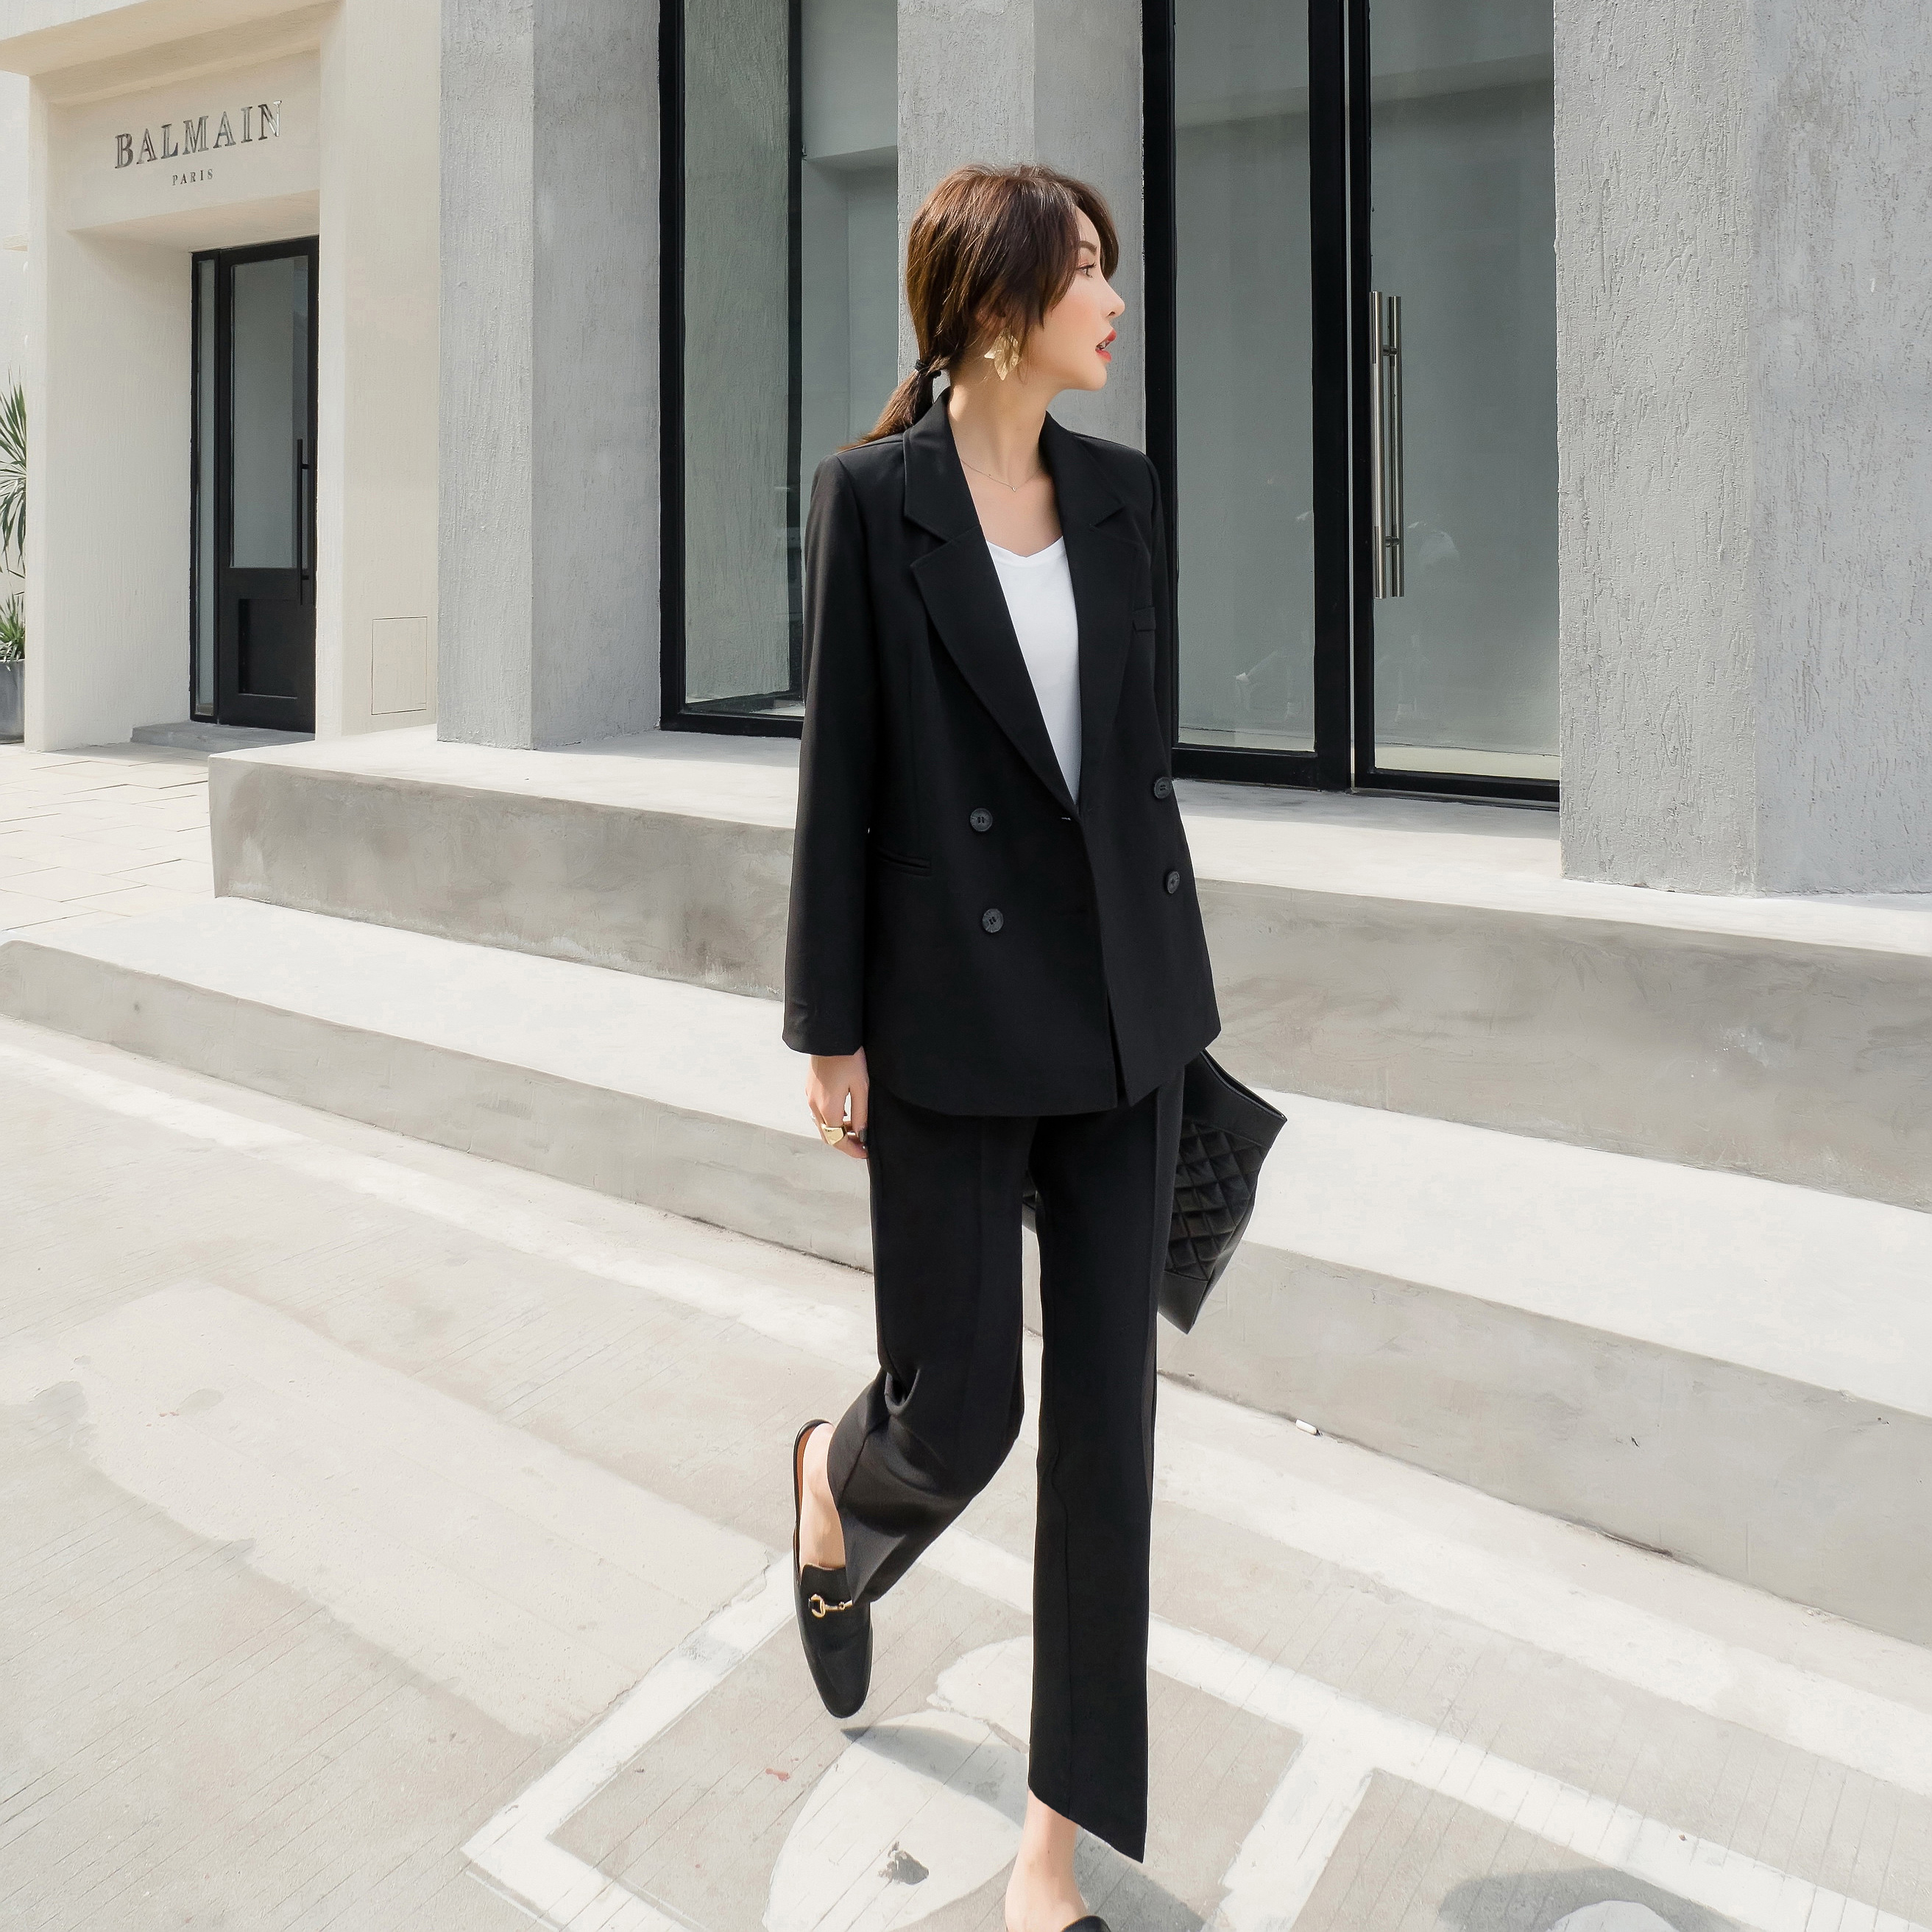 Spring Autumn New Casual Loose Suit Retro Women Fashion Suit two-piece